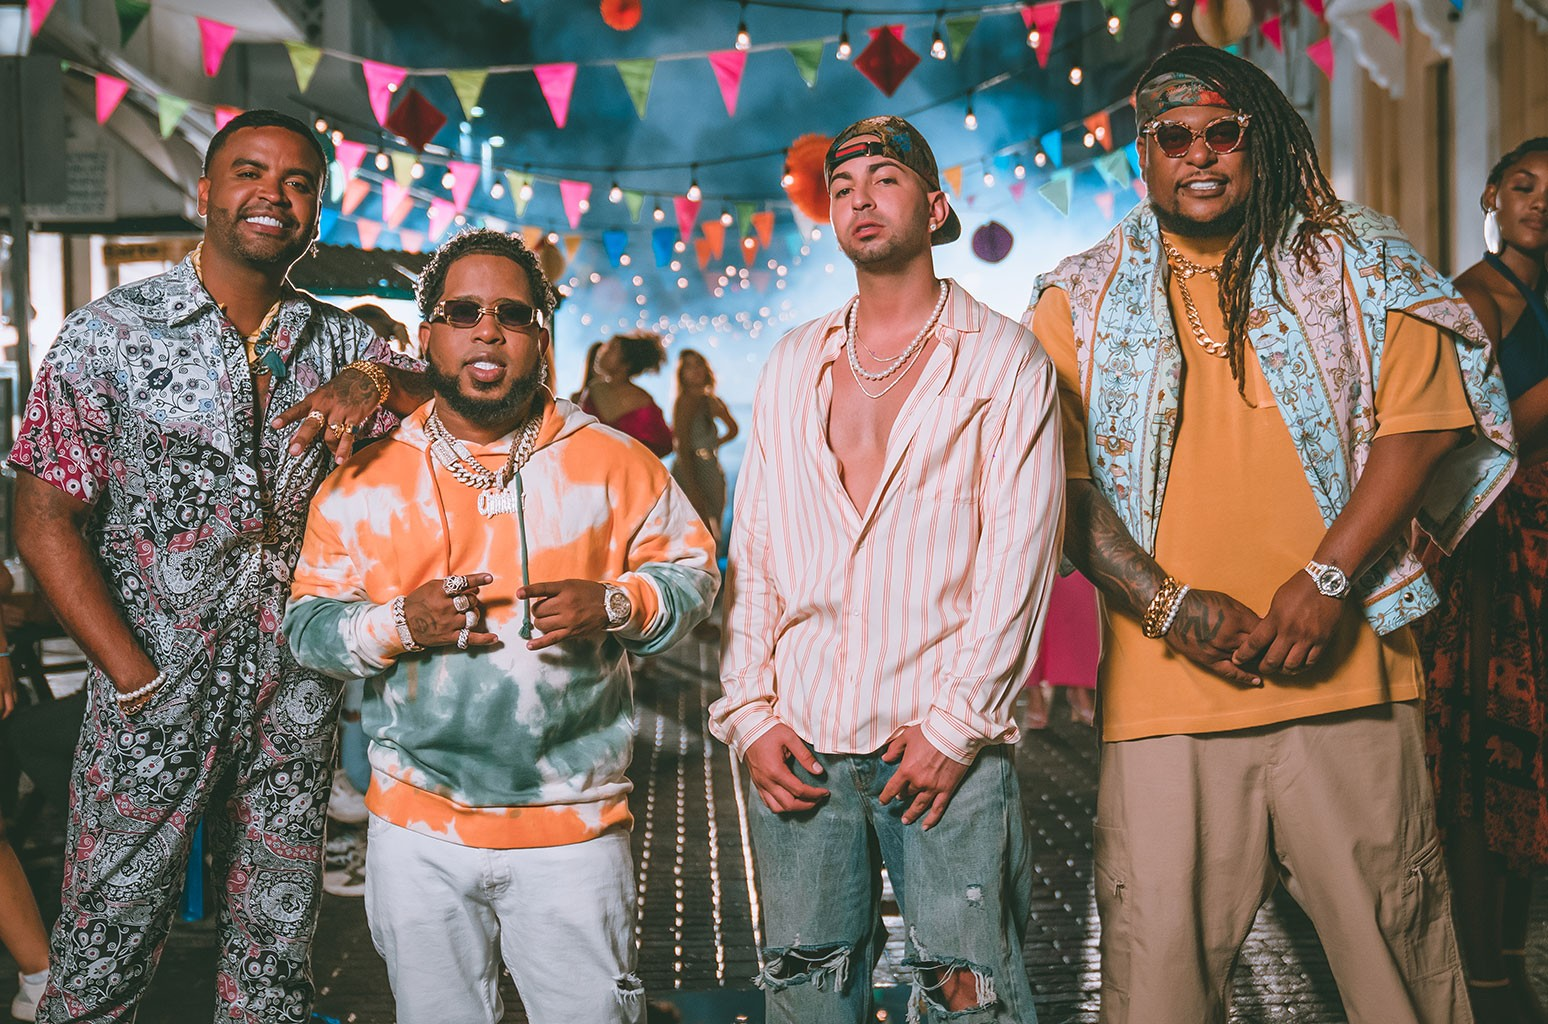 Justin Quiles, Chimbala, Zion & Lennox